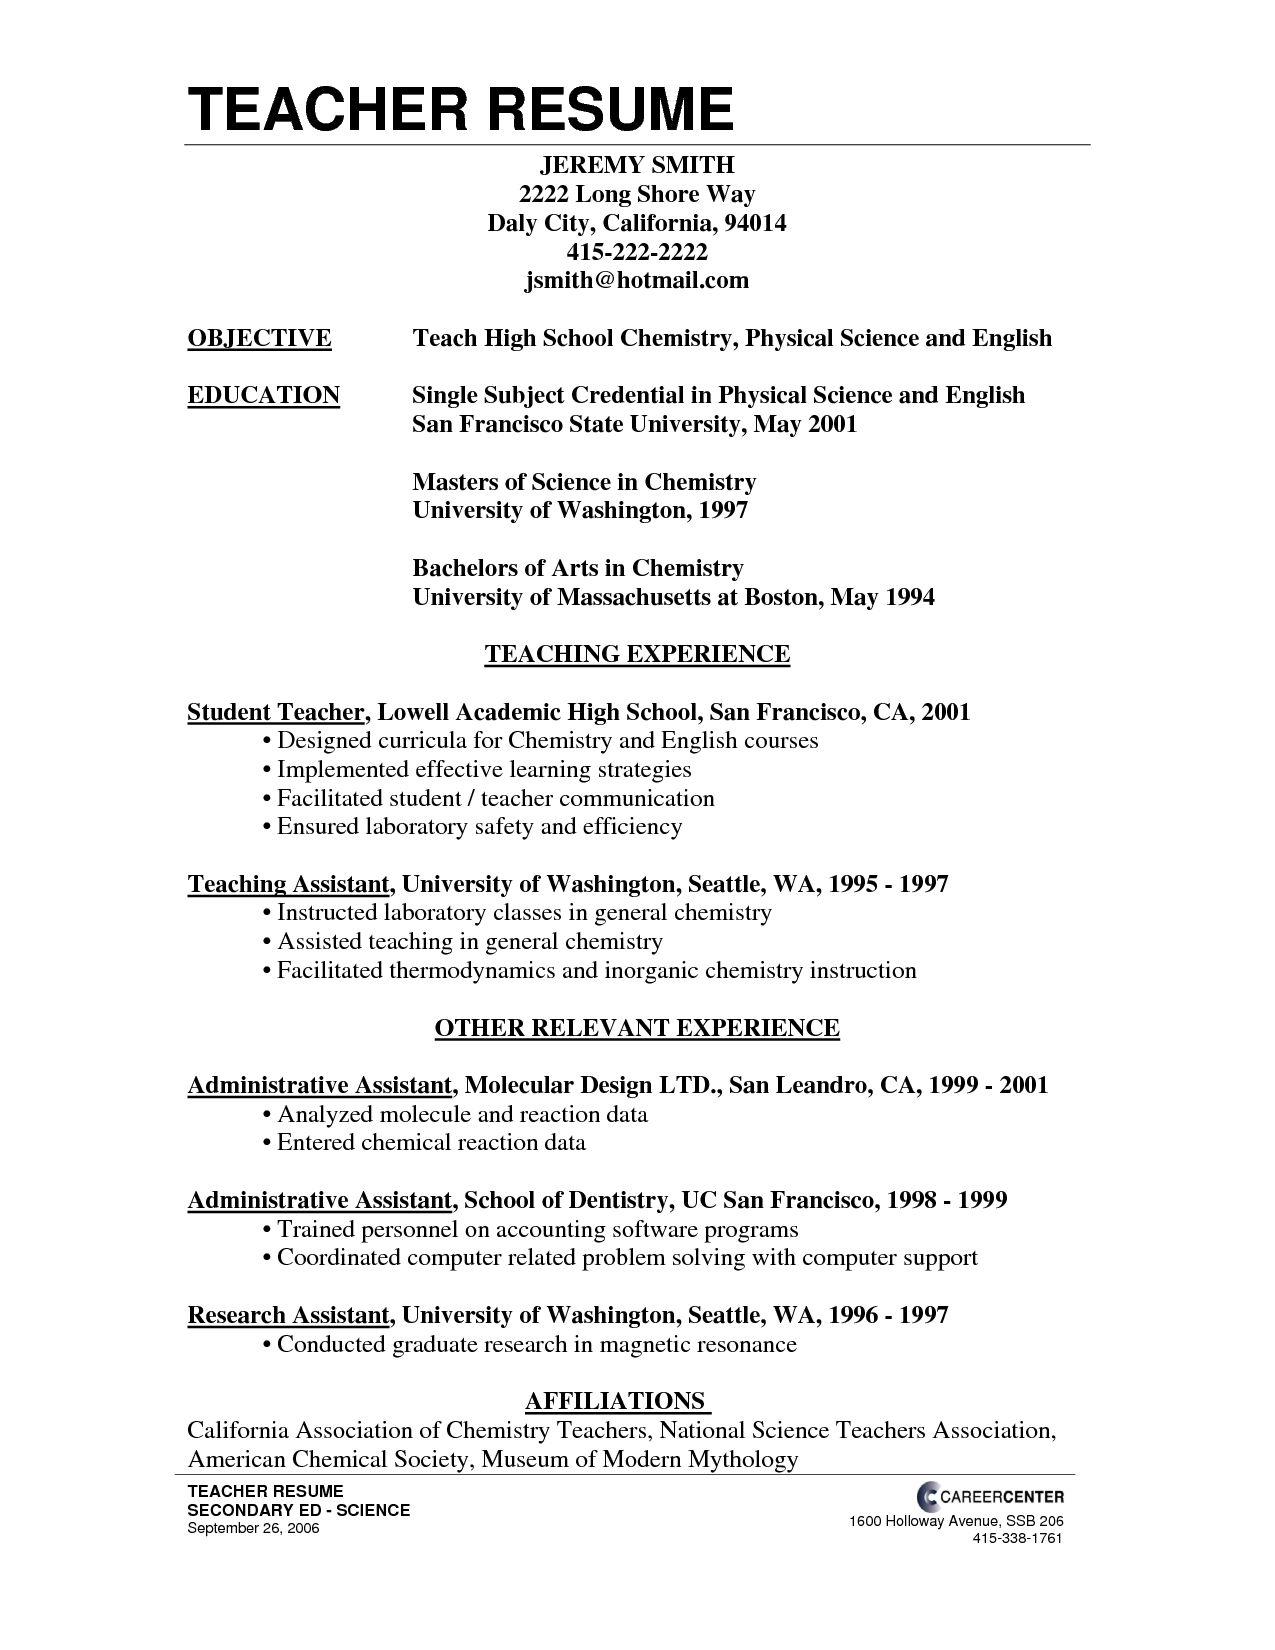 Objective for the teacher resume popular phd article review example